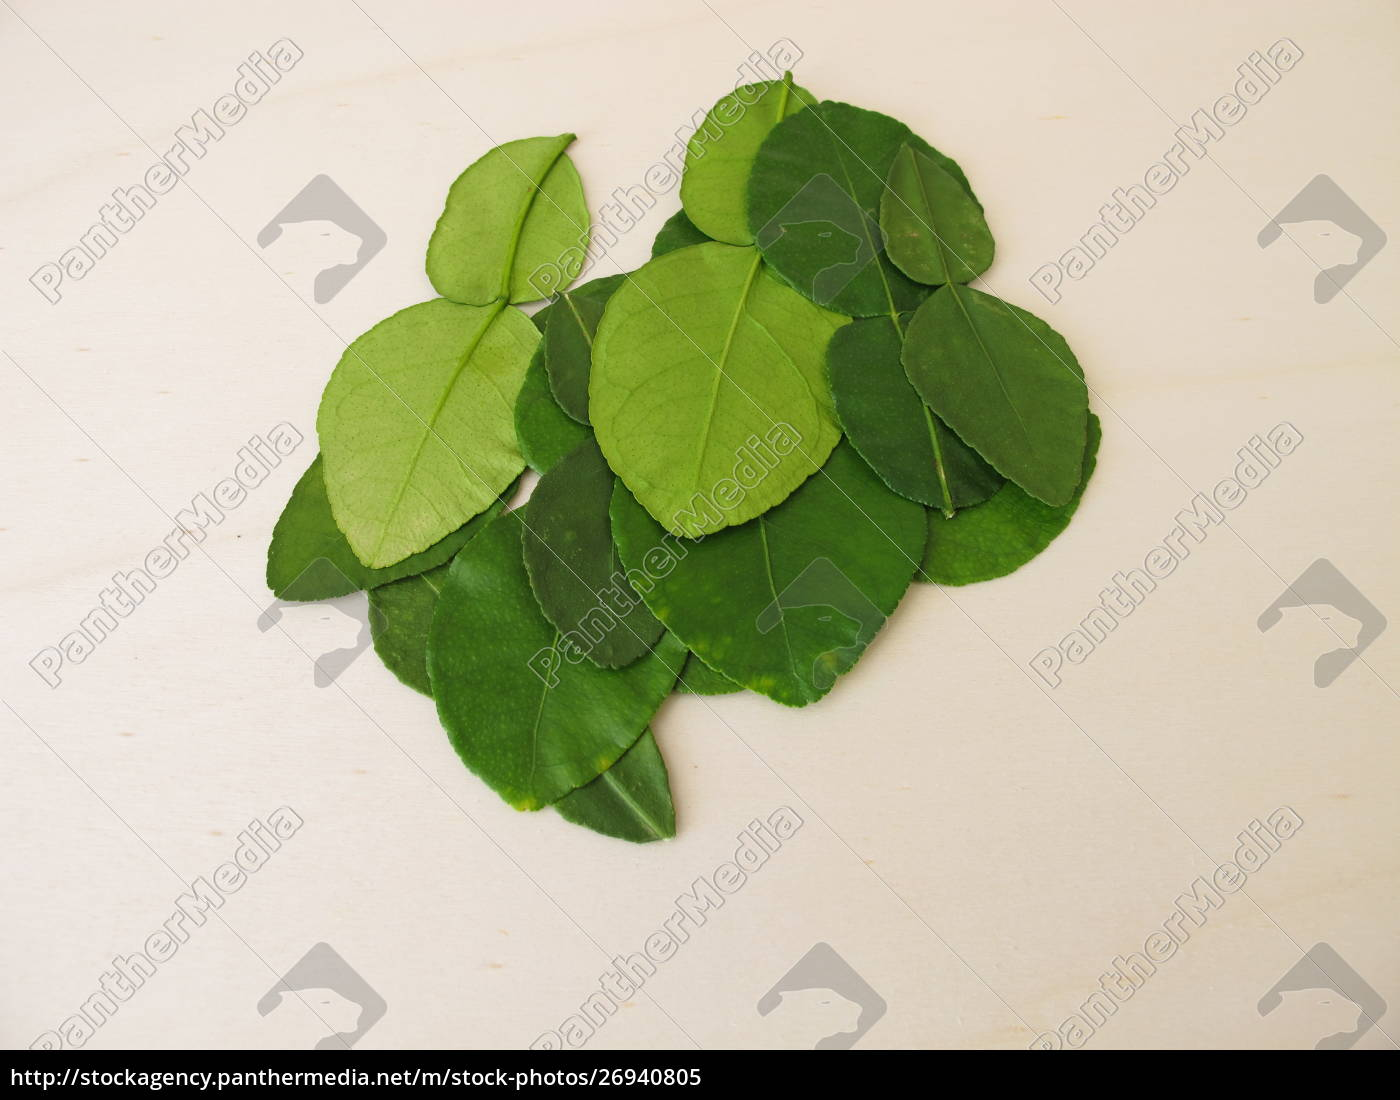 Fresh Kaffir Lime Leaves Stock Photo 26940805 Panthermedia Stock Agency,How To Make Jalapeno Poppers With Cream Cheese